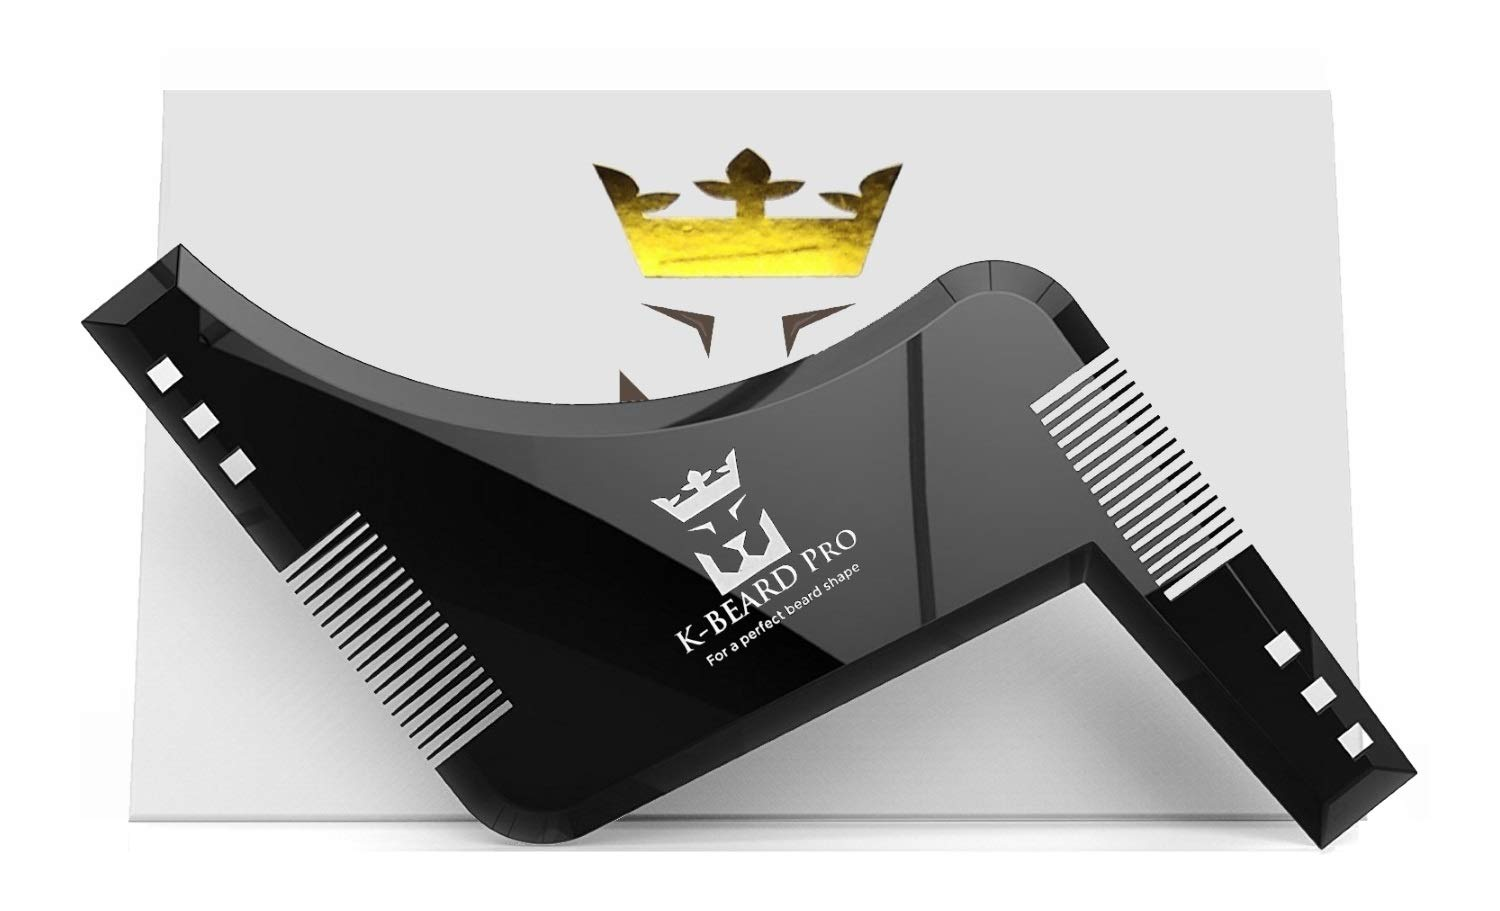 PilPoc K-BEARD Pro - The 1 Beard Styling and Shaping Template Tool for Symmetric Cheek Line, Neck Line, Jaw Line, Moustache, Goatee and Sideburns B01N4JIL7F